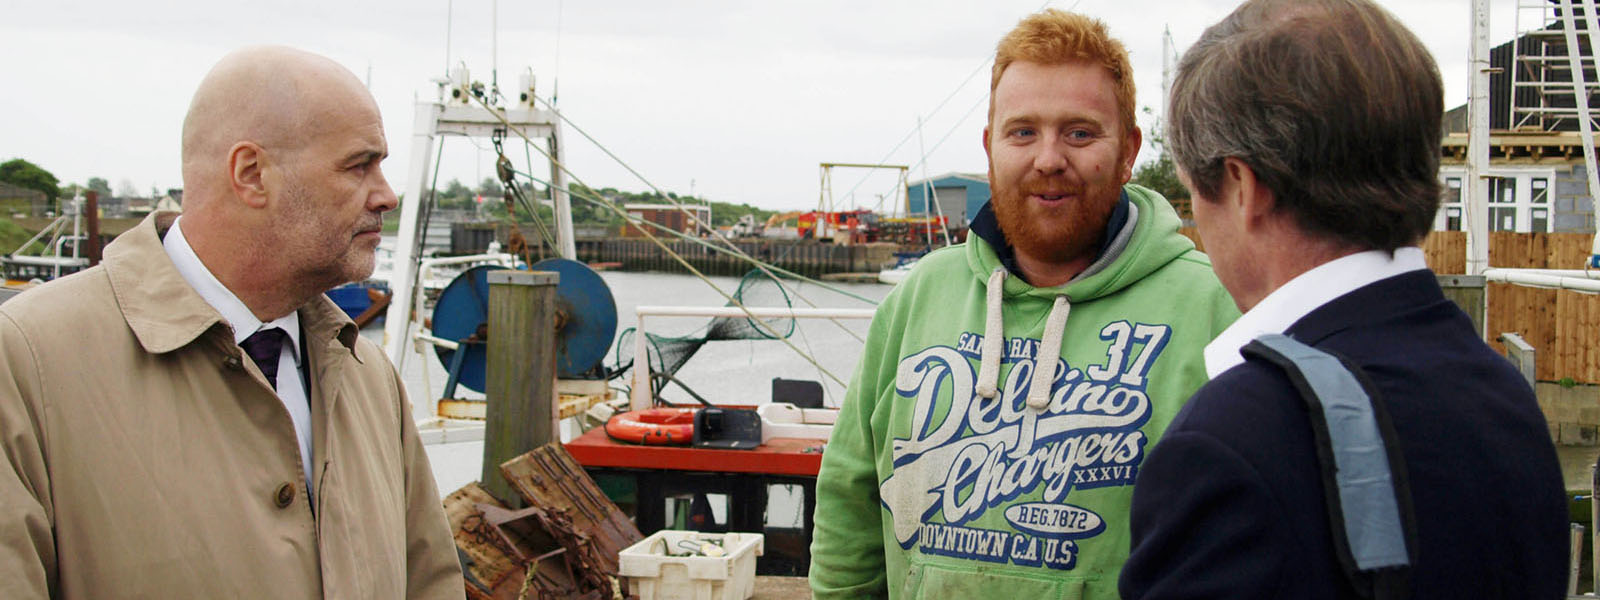 Pulse Trawling: Complete EU Waters Ban from Mid-2021